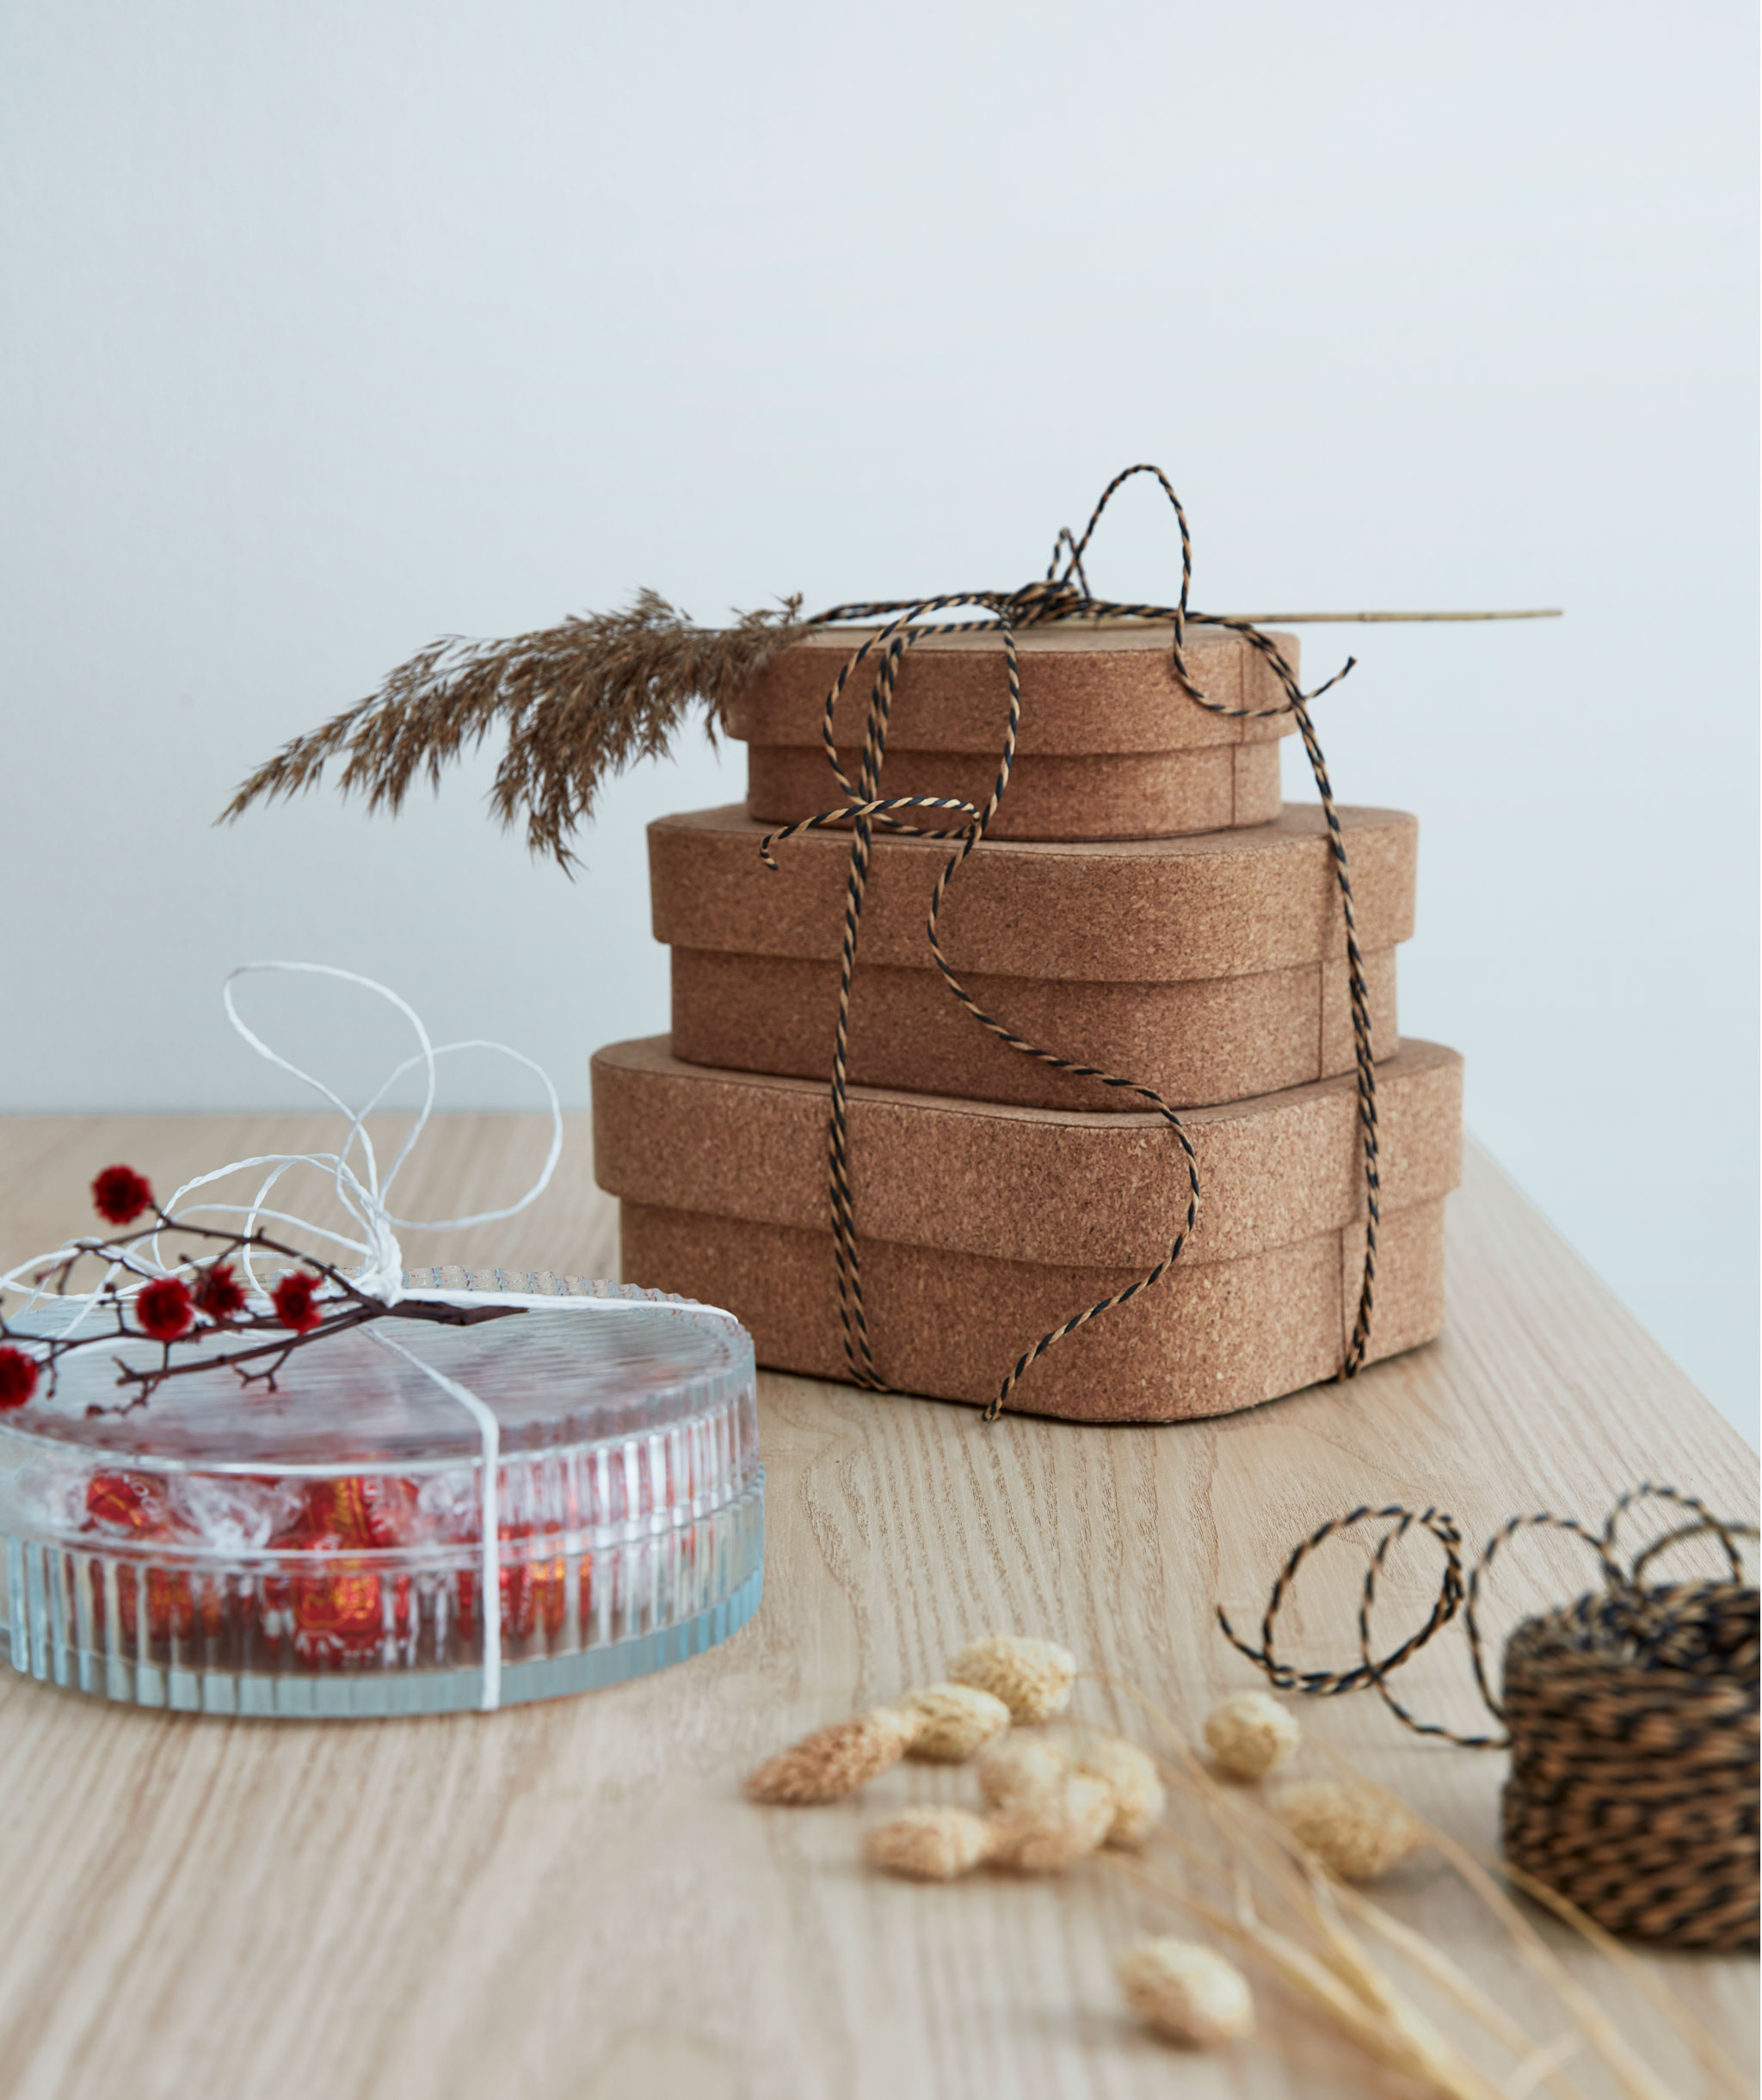 Three cork boxes tied together with string, decorated with grass stems; a gift-wrapped glass jar of candies next to it.